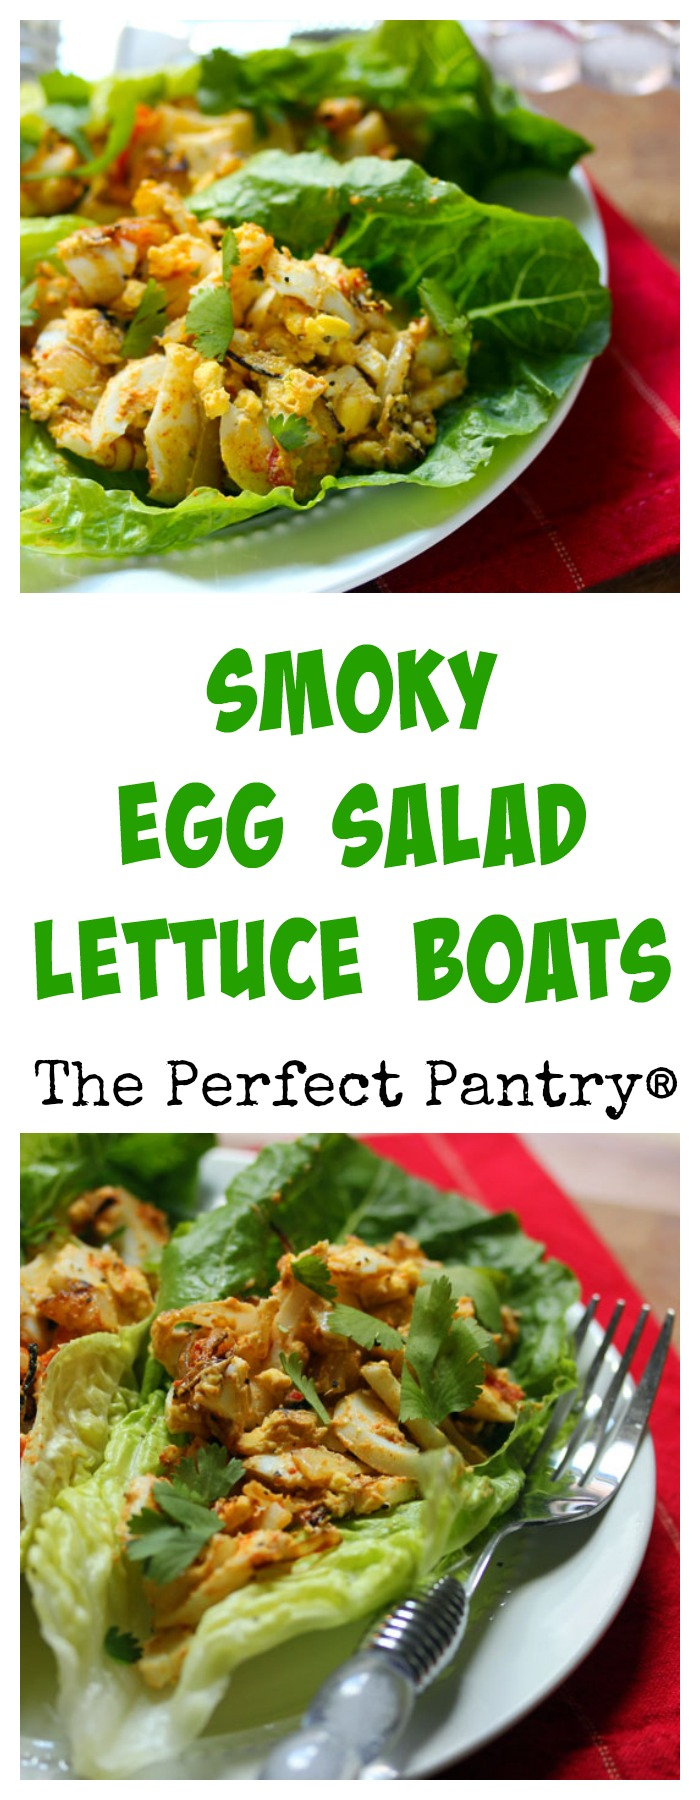 Smoky egg salad lettuce boats with caramelized onions. #vegetarian